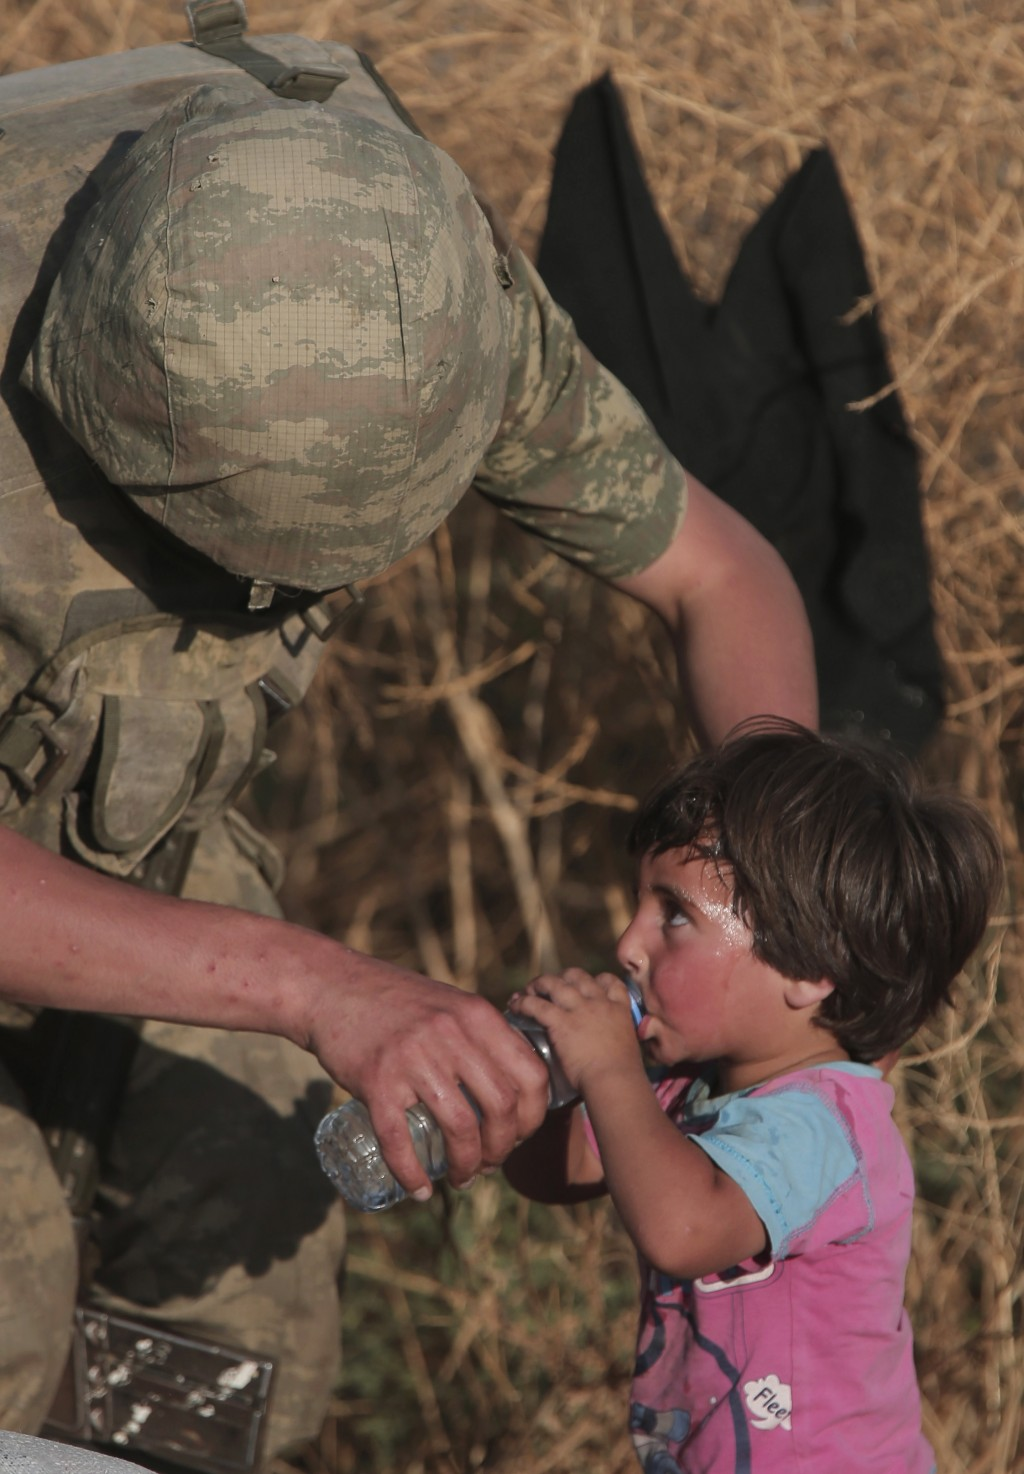 File - In this June 14, 2015, file photo a Turkish soldier offers water to a Syrian refugee child after crossing into Turkey from Syria, in Akcakale, ...